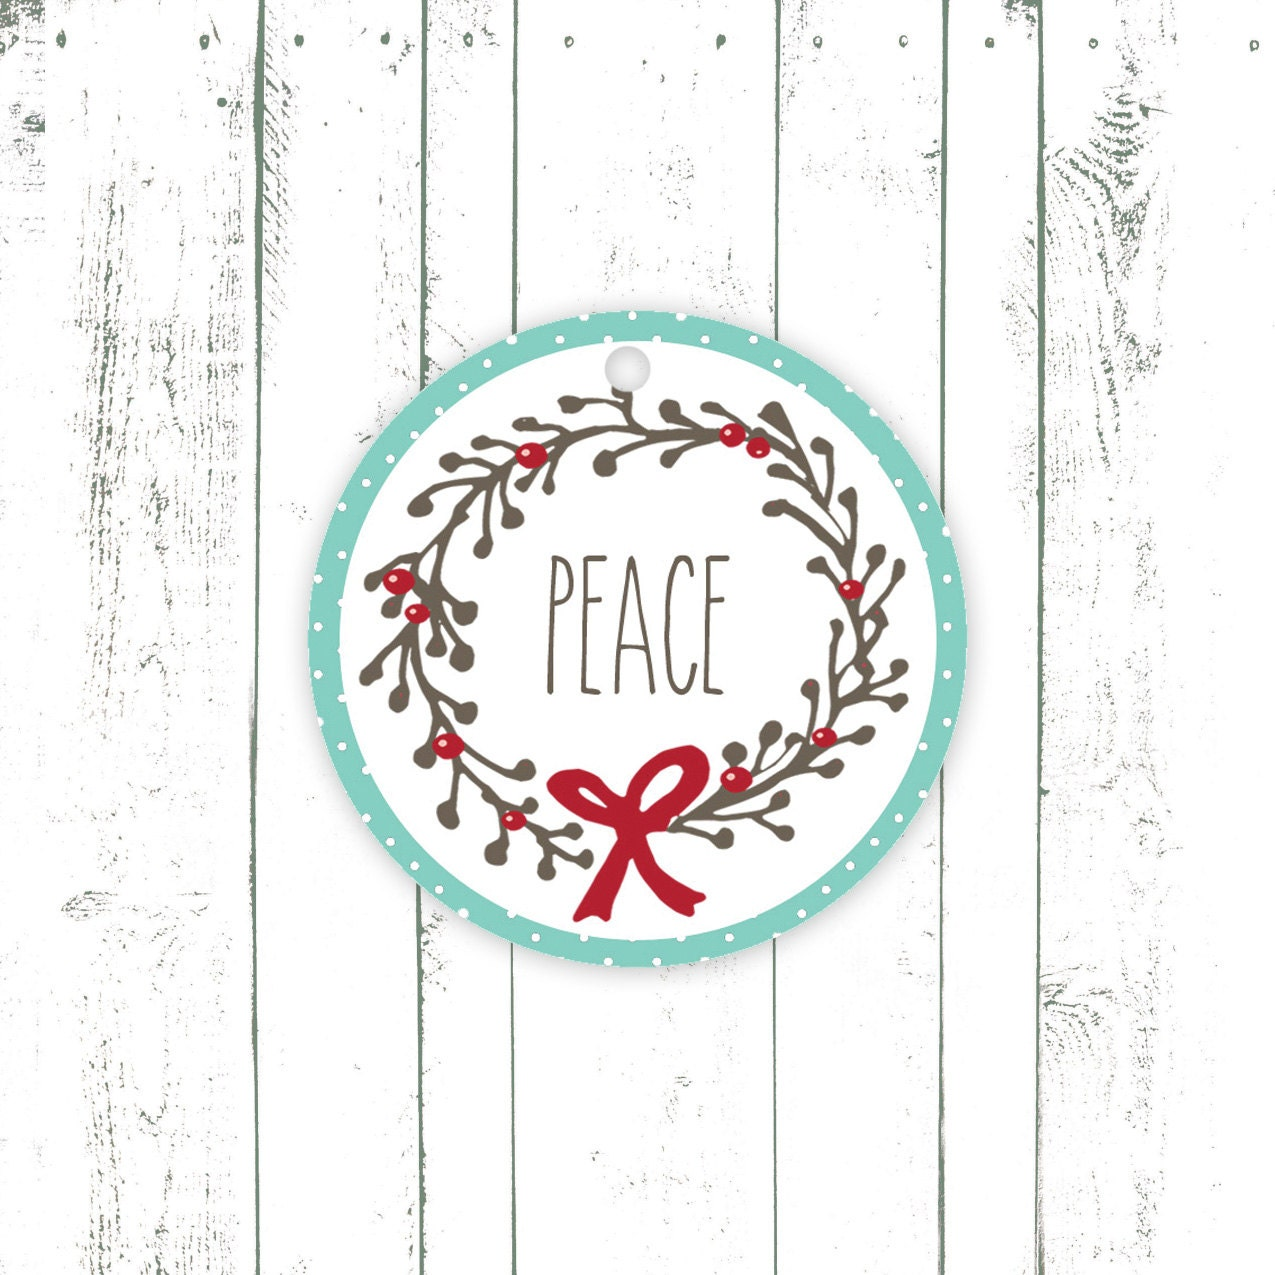 Holiday Gift Tags, Christmas Tags in Red and Aqua, Peace, Joy, Wreath with Holly Berries